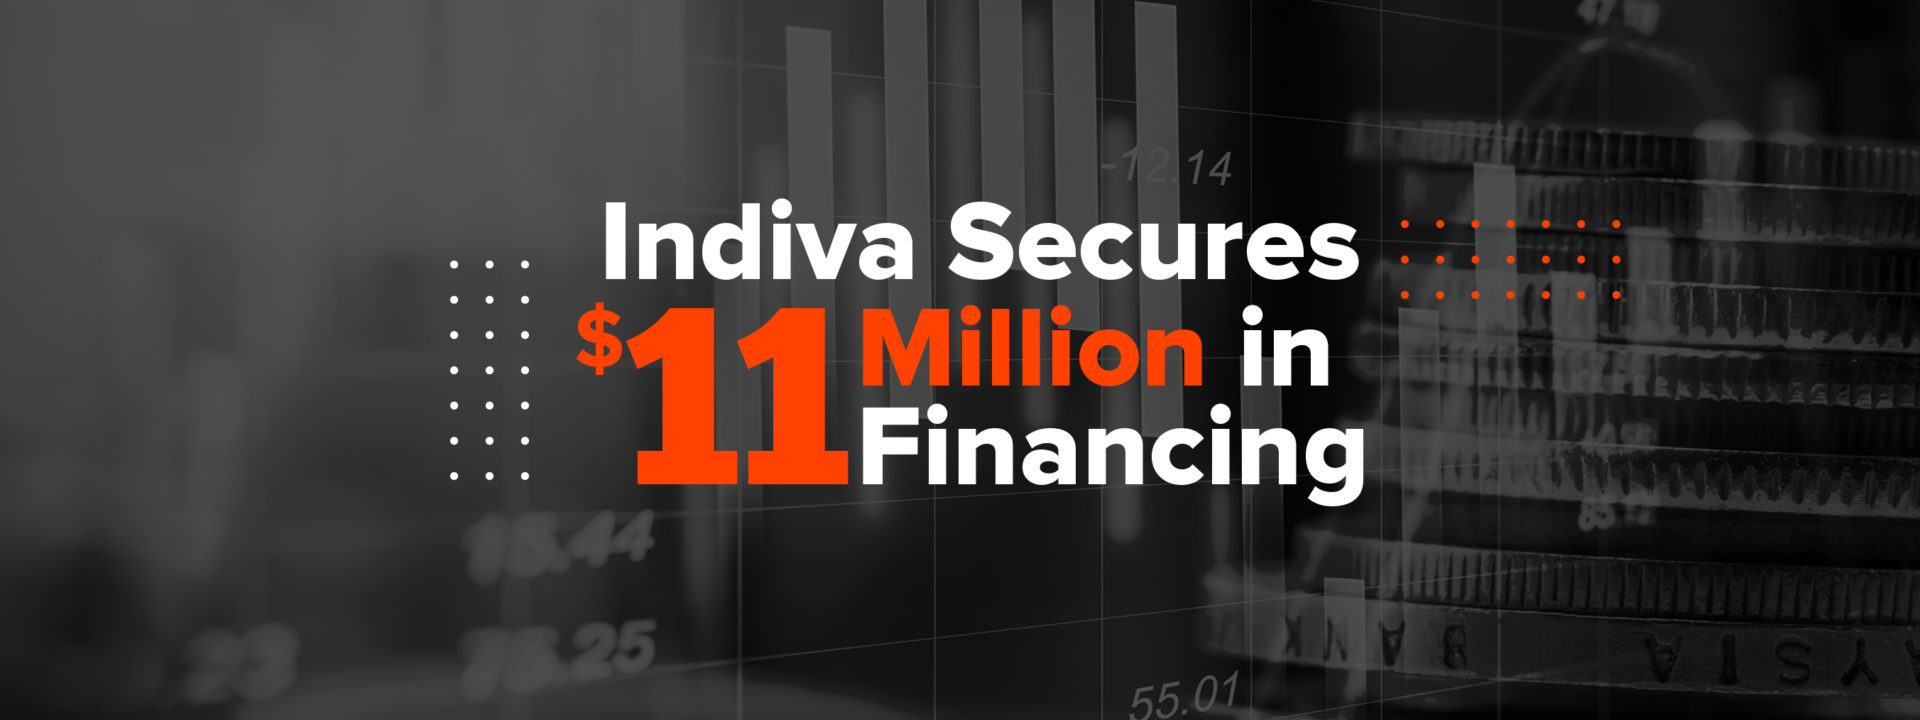 Press Release – Indiva Secures $11 Million in Financing